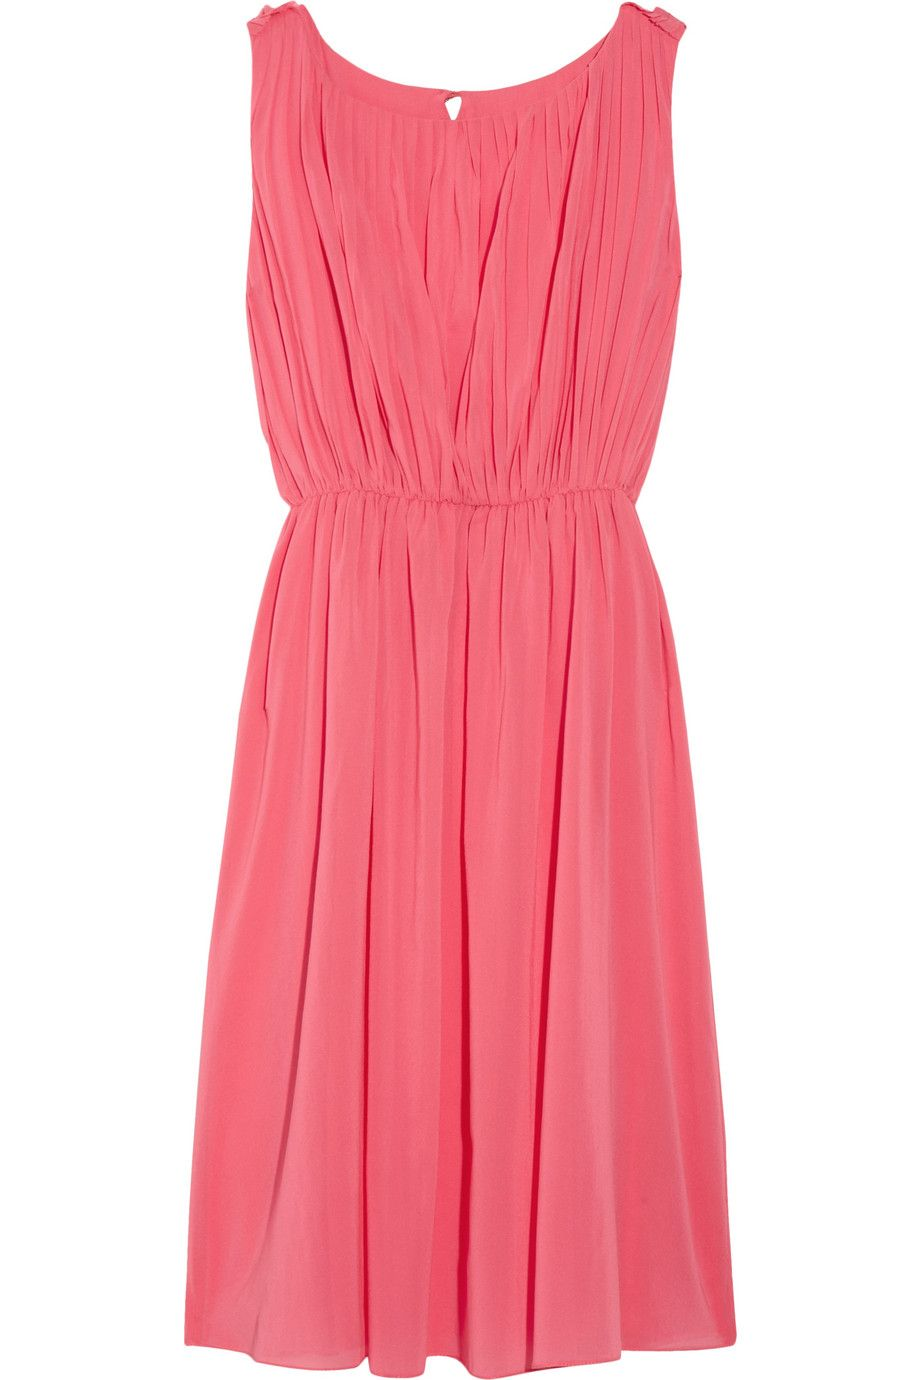 Alice + Olivia pink dress | Dress me in this | Pinterest